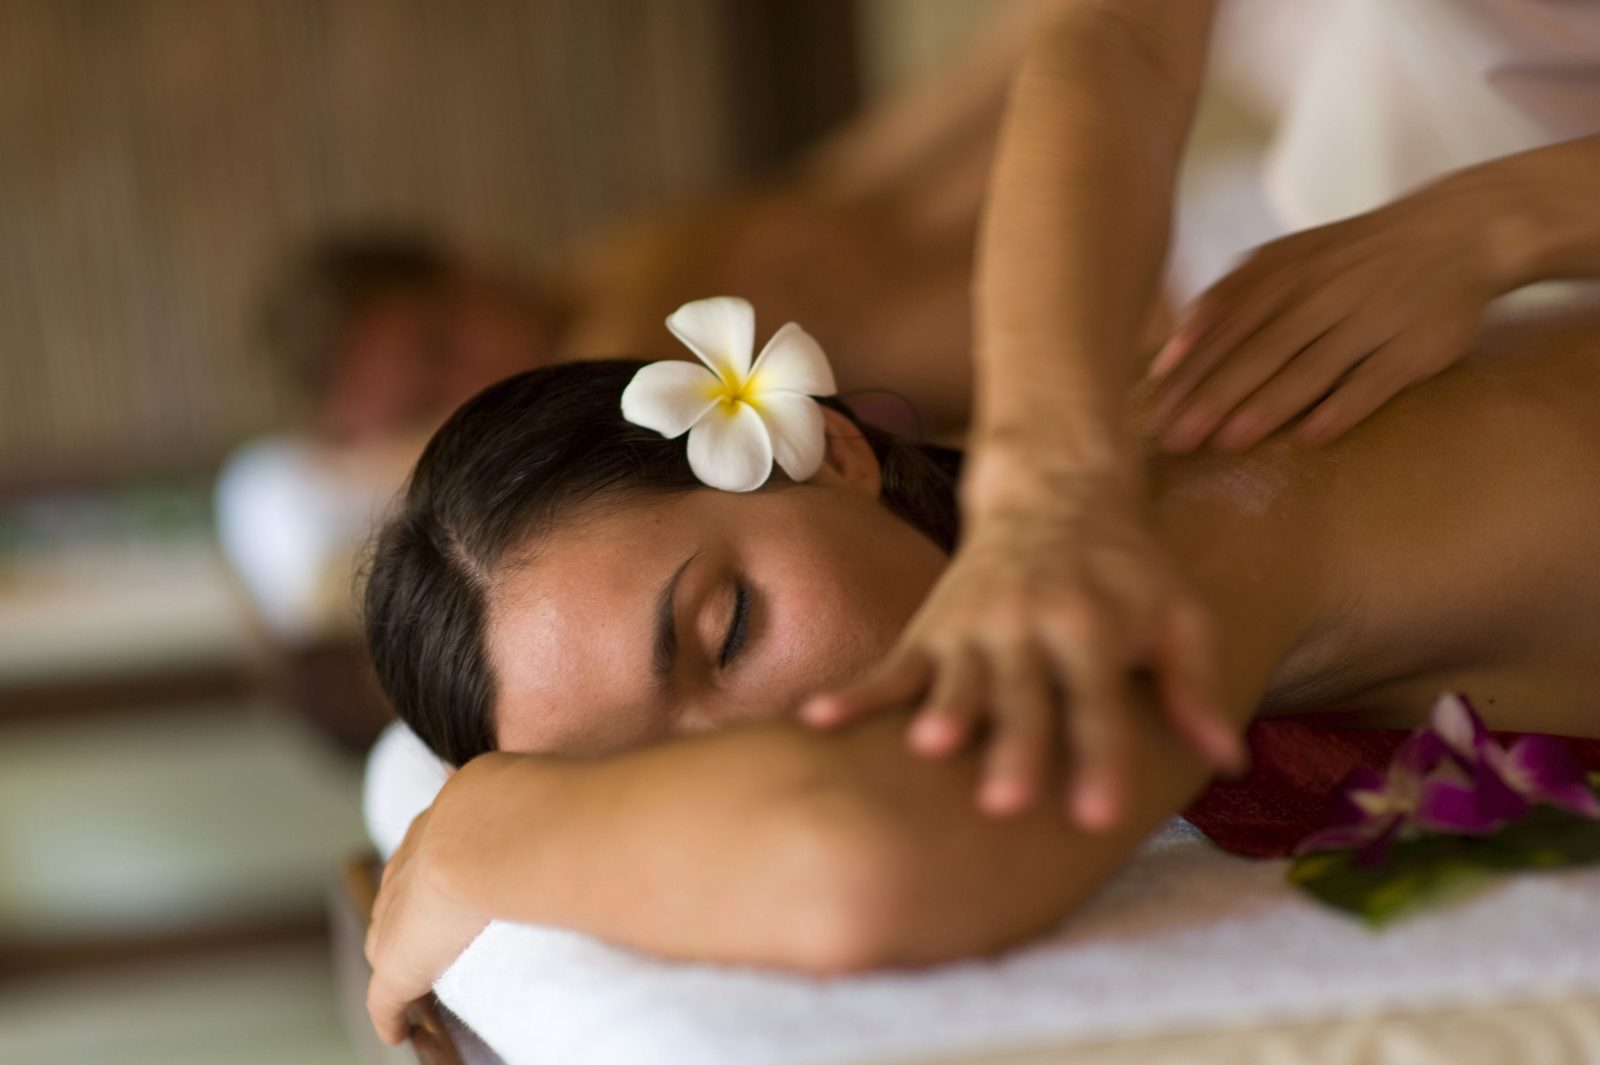 Relax and unwind massage